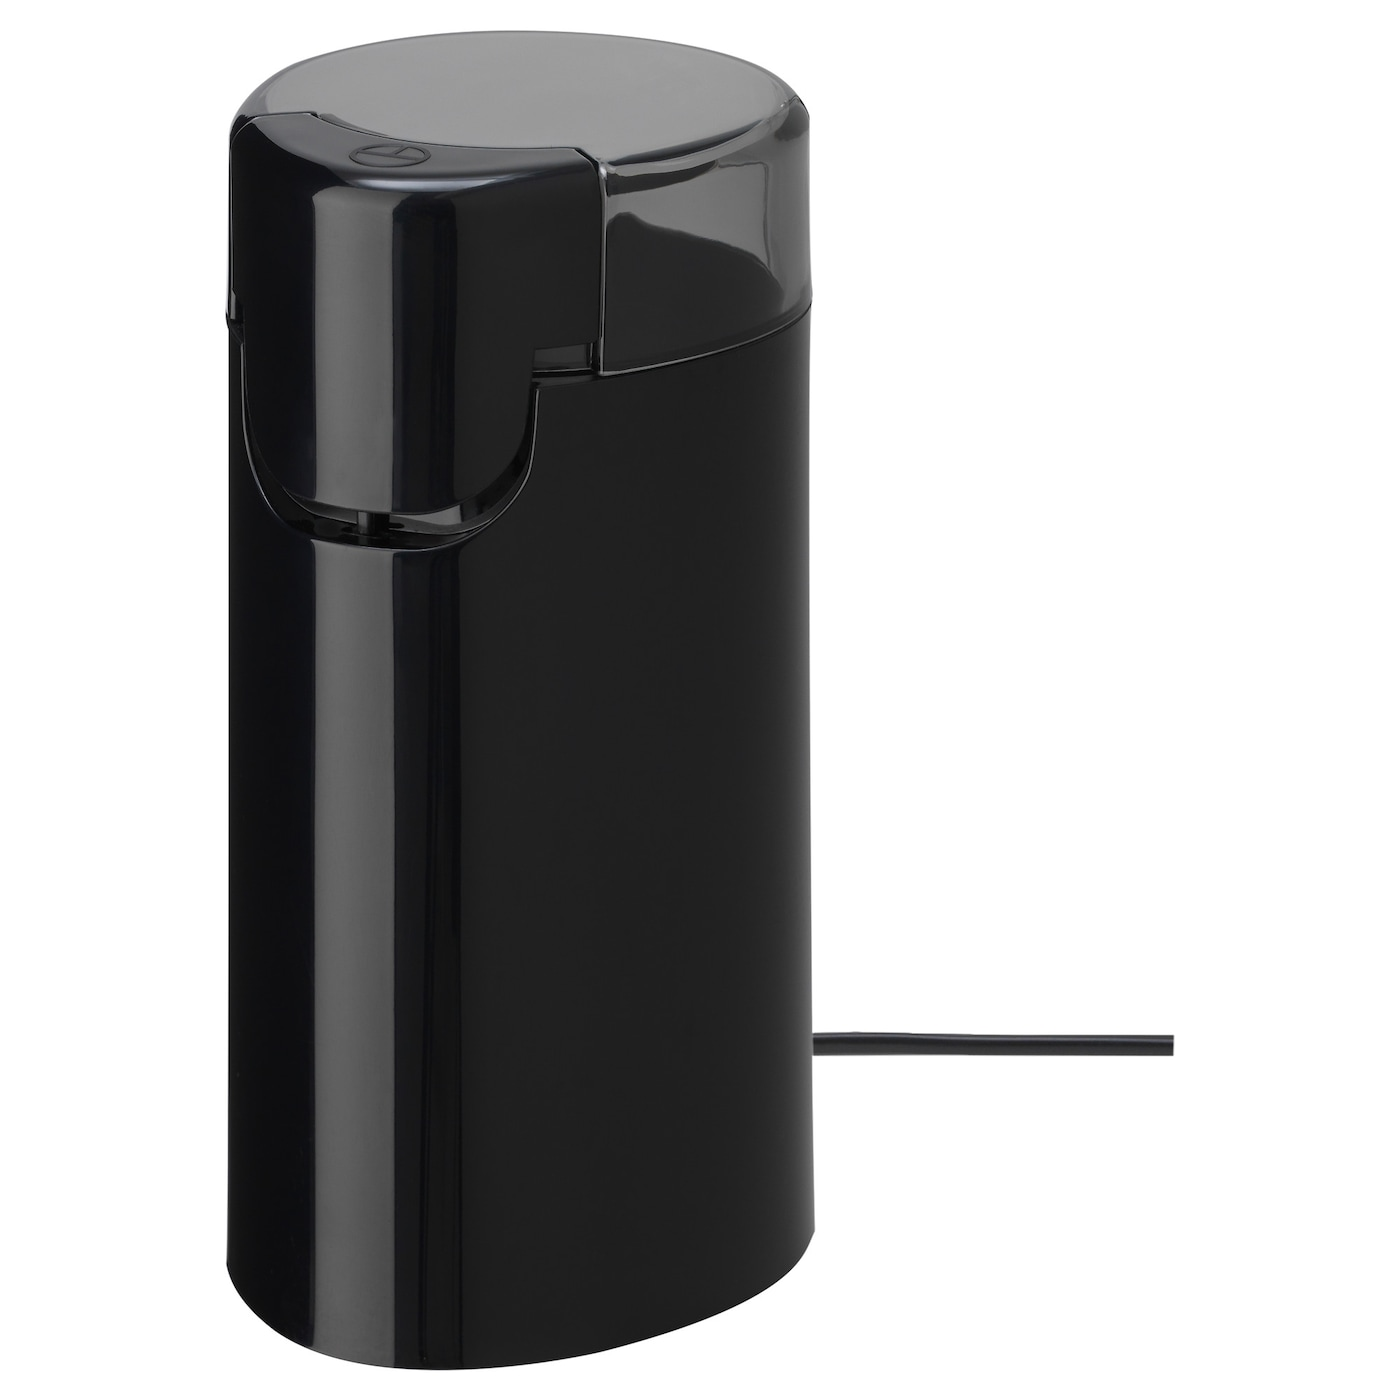 IKEA ALLMÄNNING coffee grinder, electric This coffee grinder is lightweight and easy to store away.